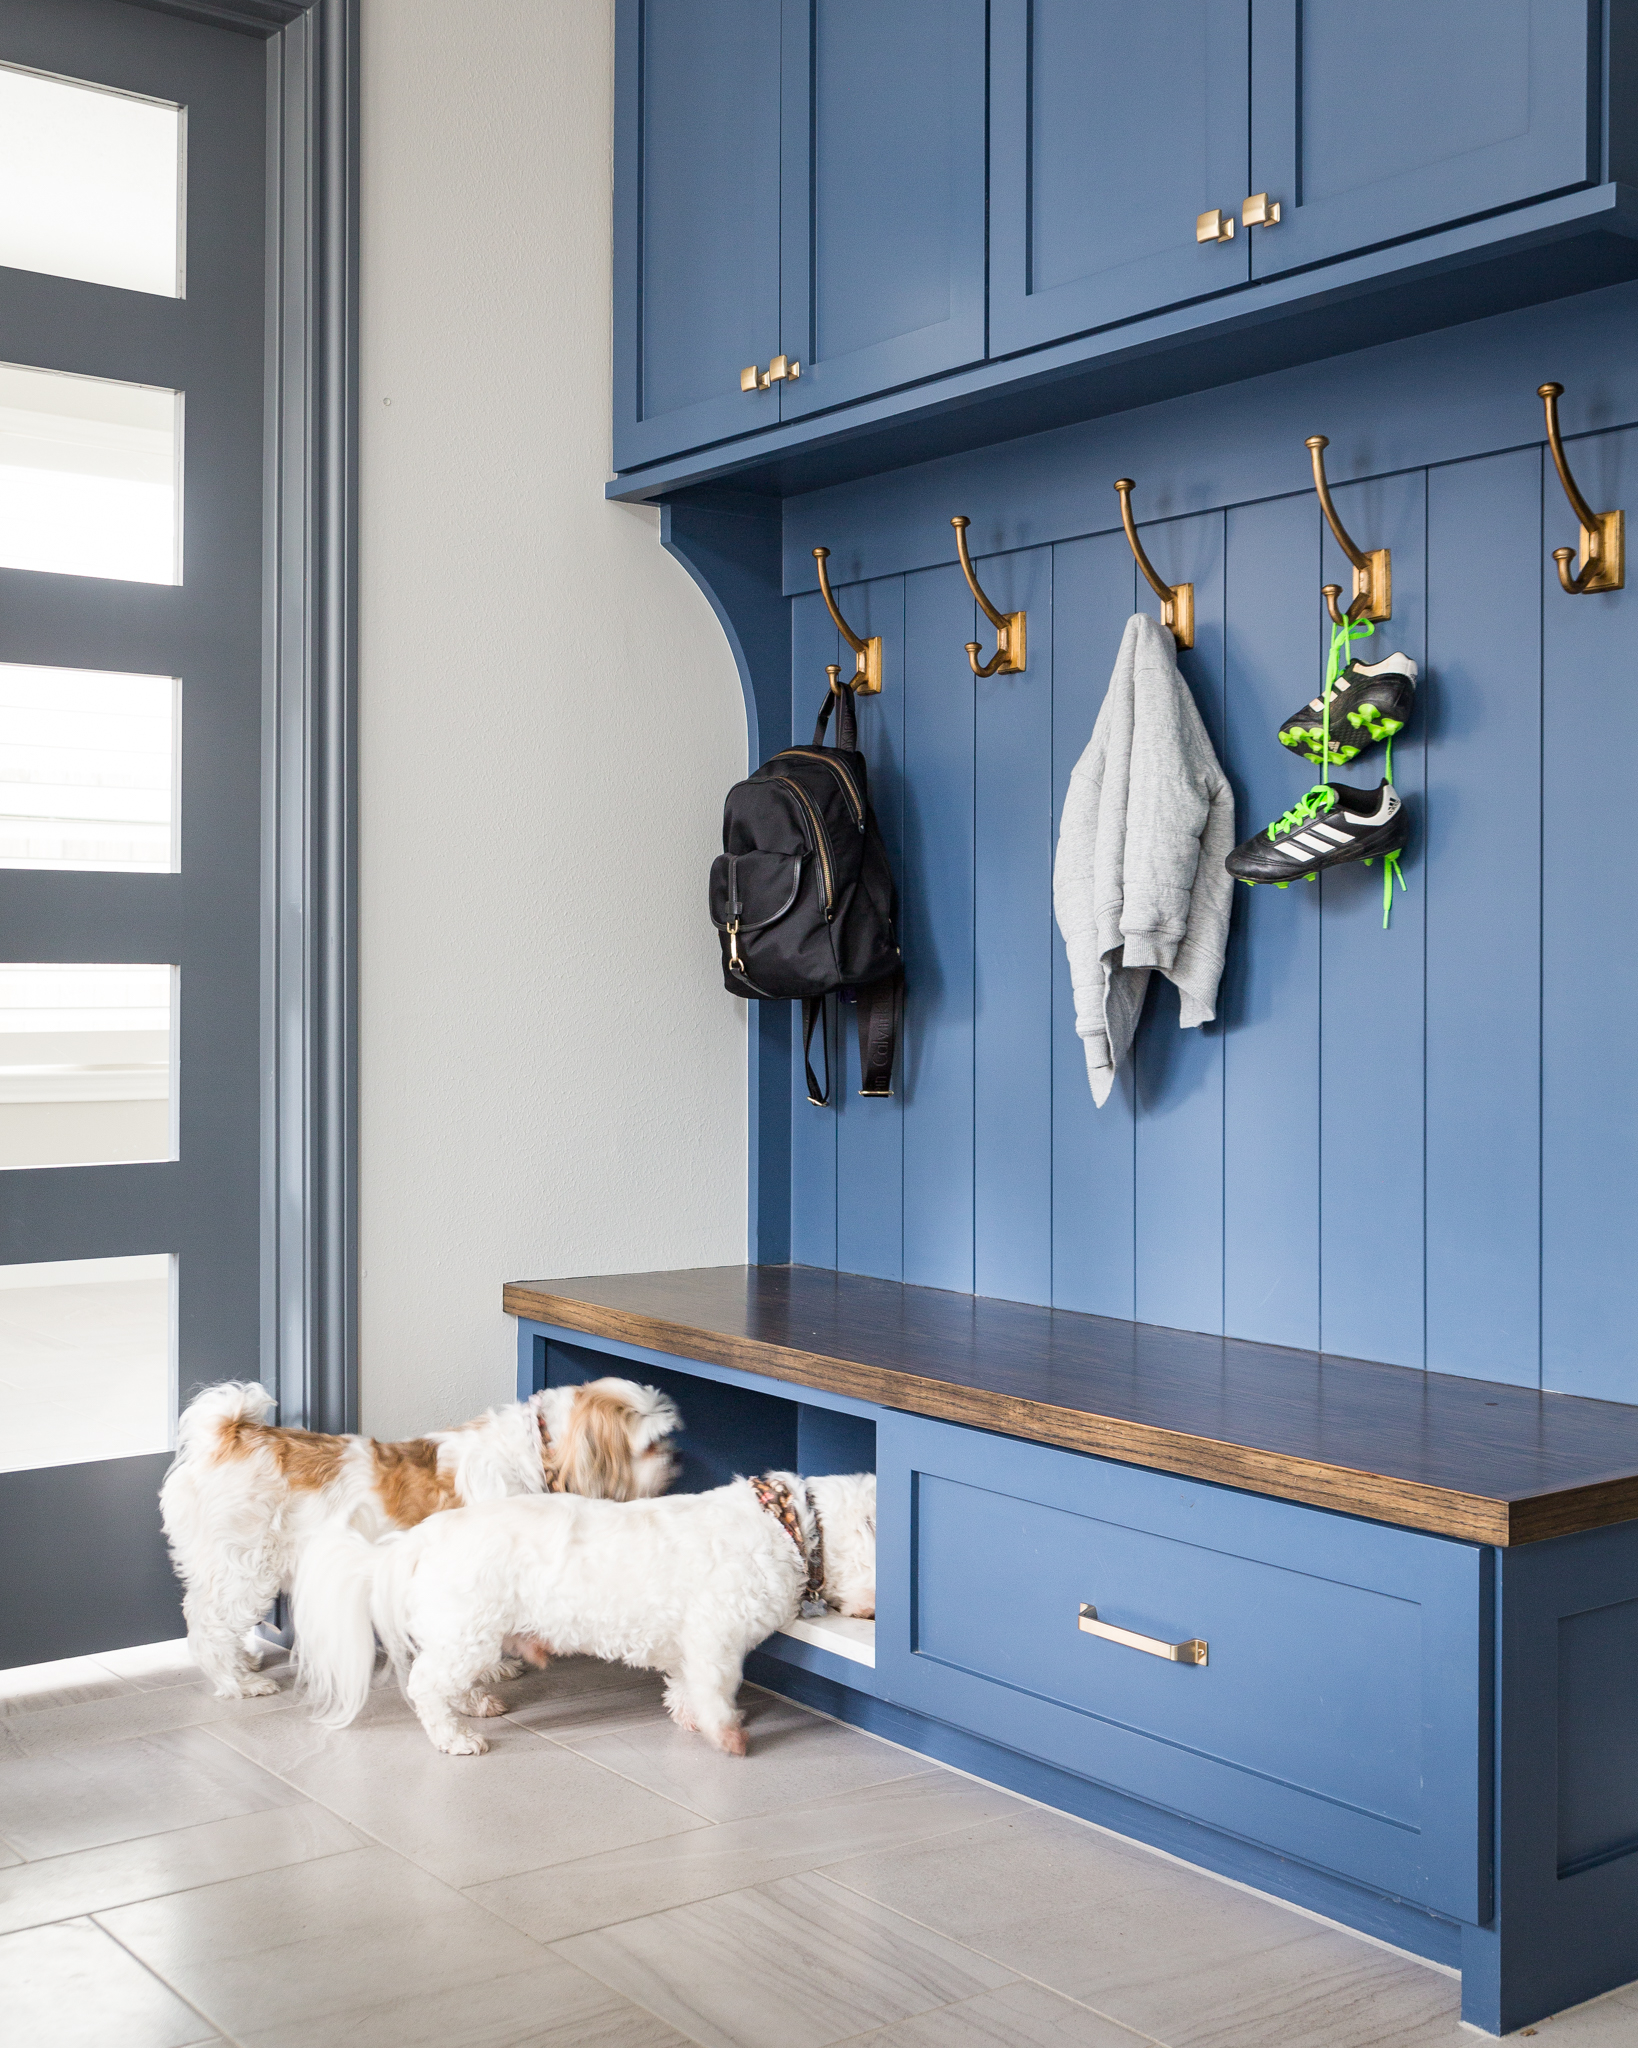 BEFORE AND AFTER - A navy and white kitchen remodel w/ mudroom bench, dog feeding station | Carla Aston, Designer | Colleen Scott, Photographer #mudroom #dogbowl #bench #cabinetry